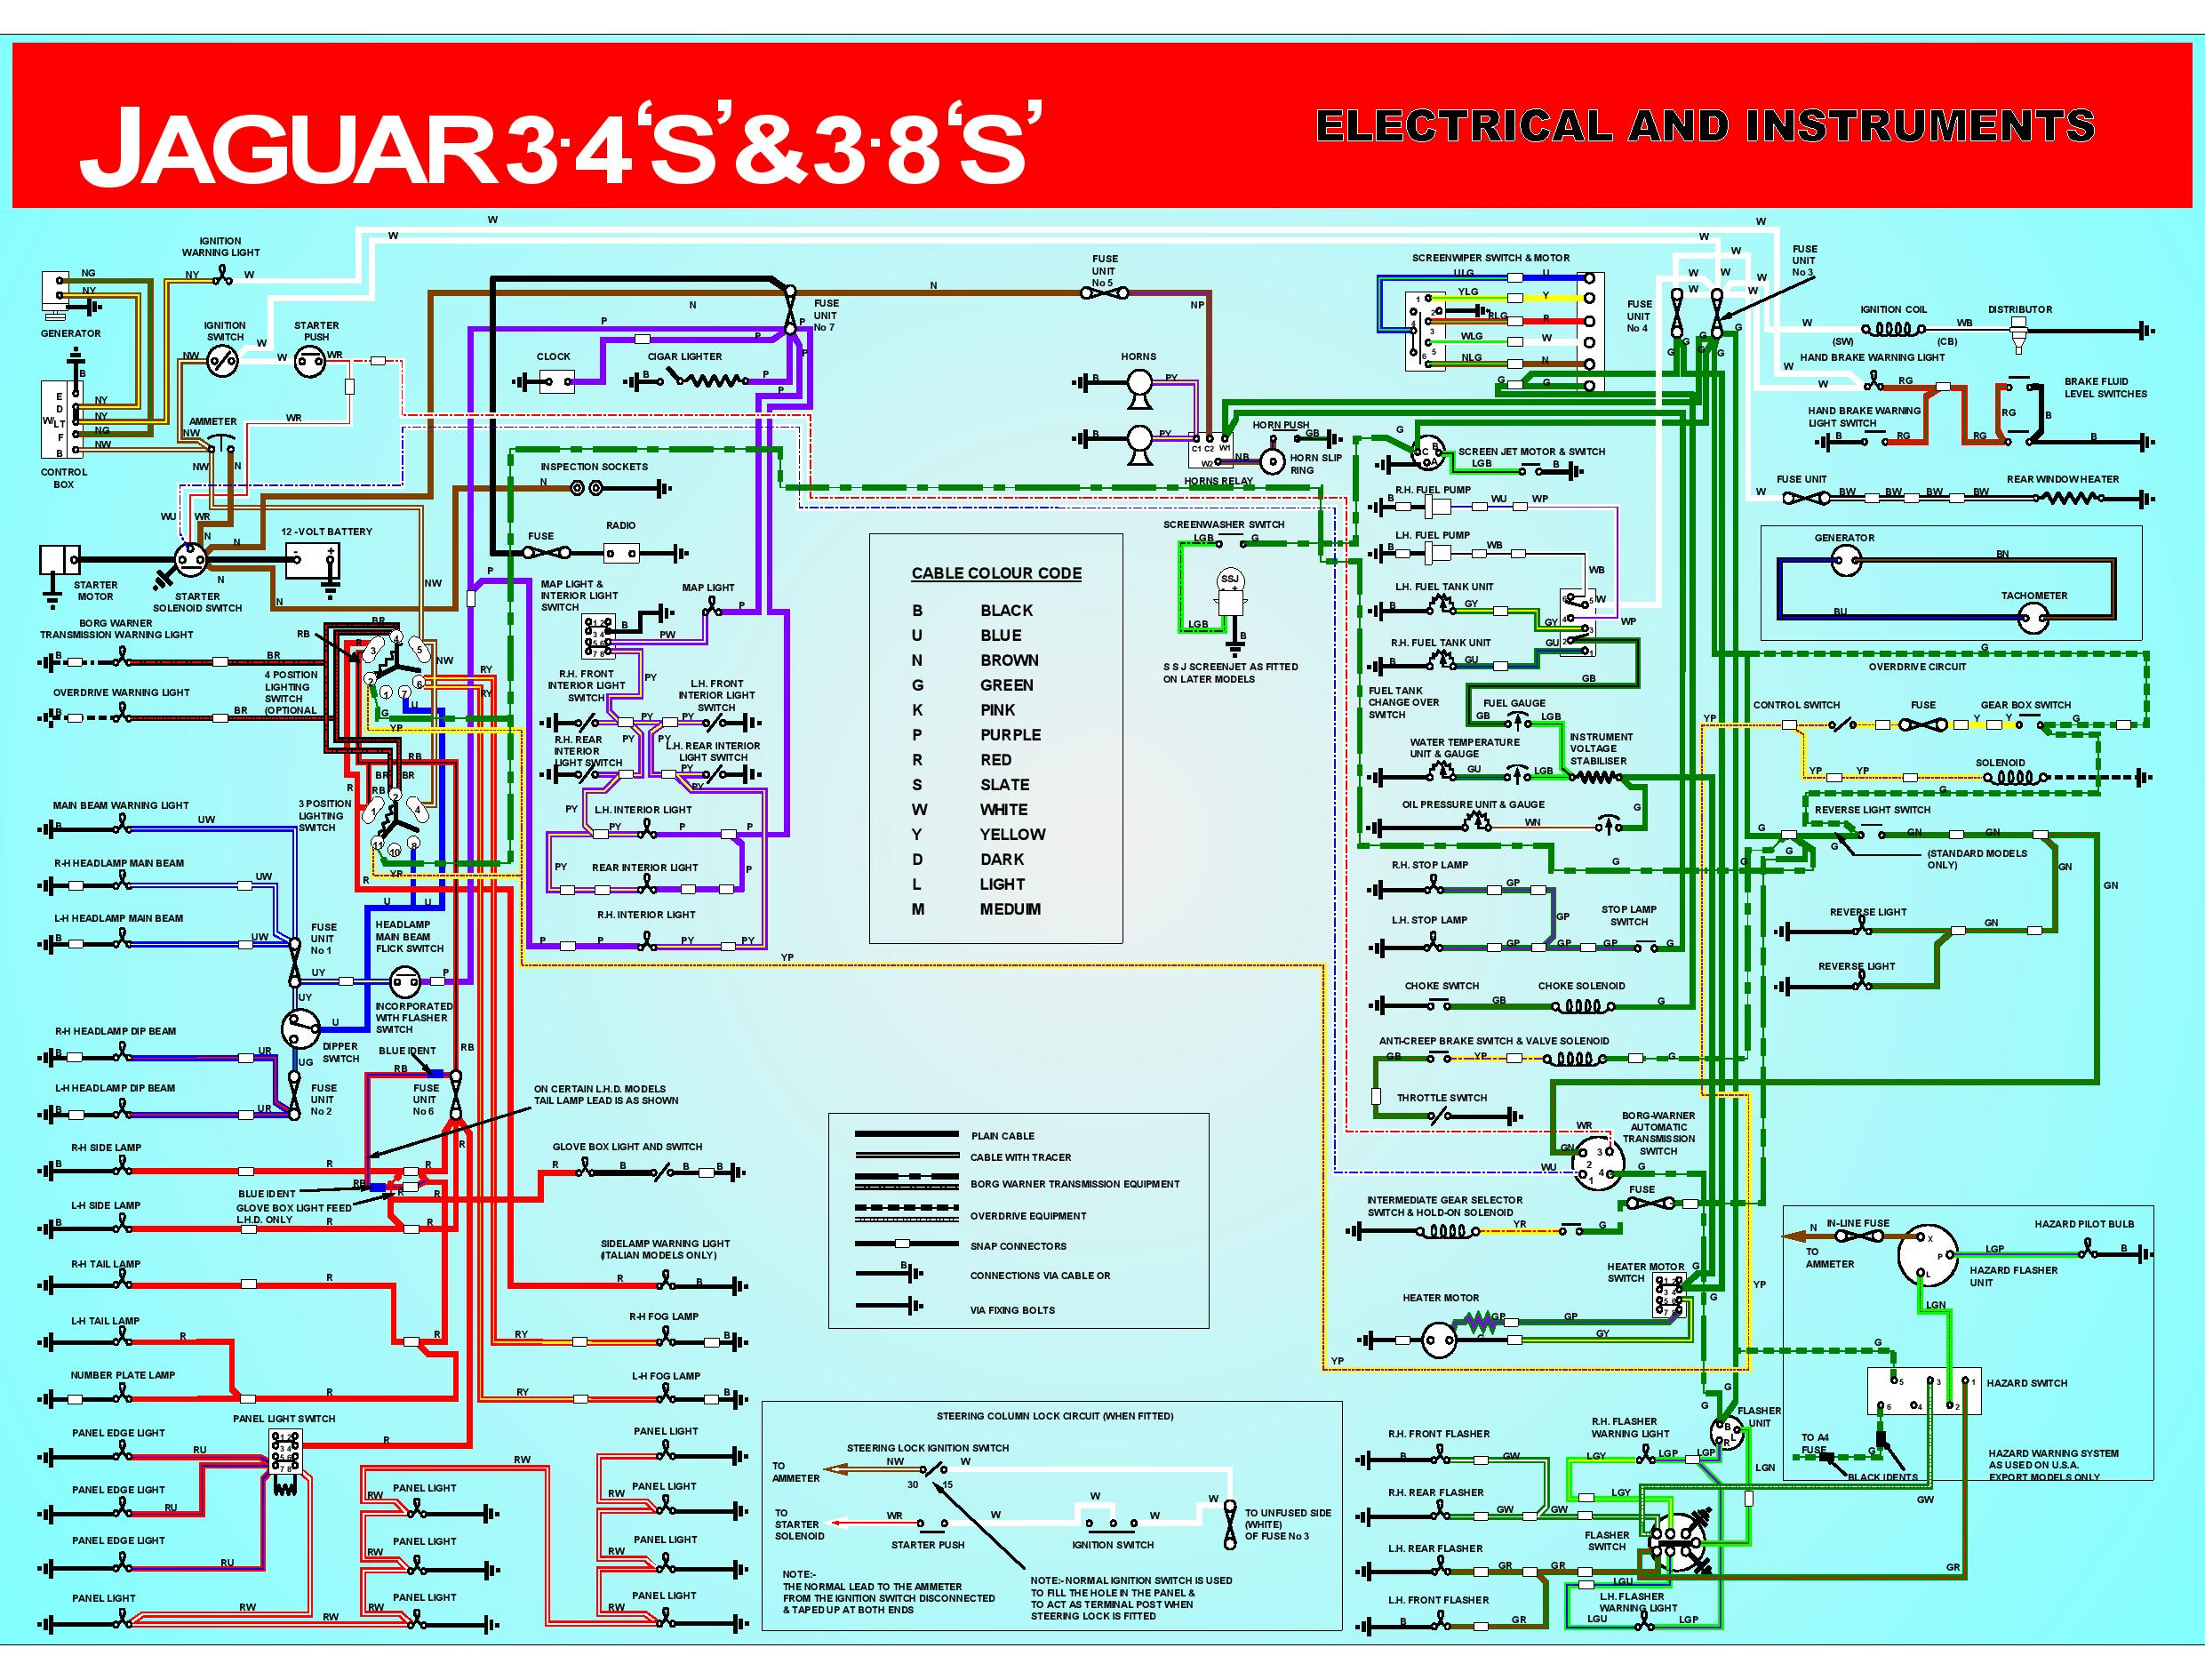 S type wiring page diagrams 633455 jaguar s type wiring diagram stype electrical jaguar s type wiring diagram download at sewacar.co